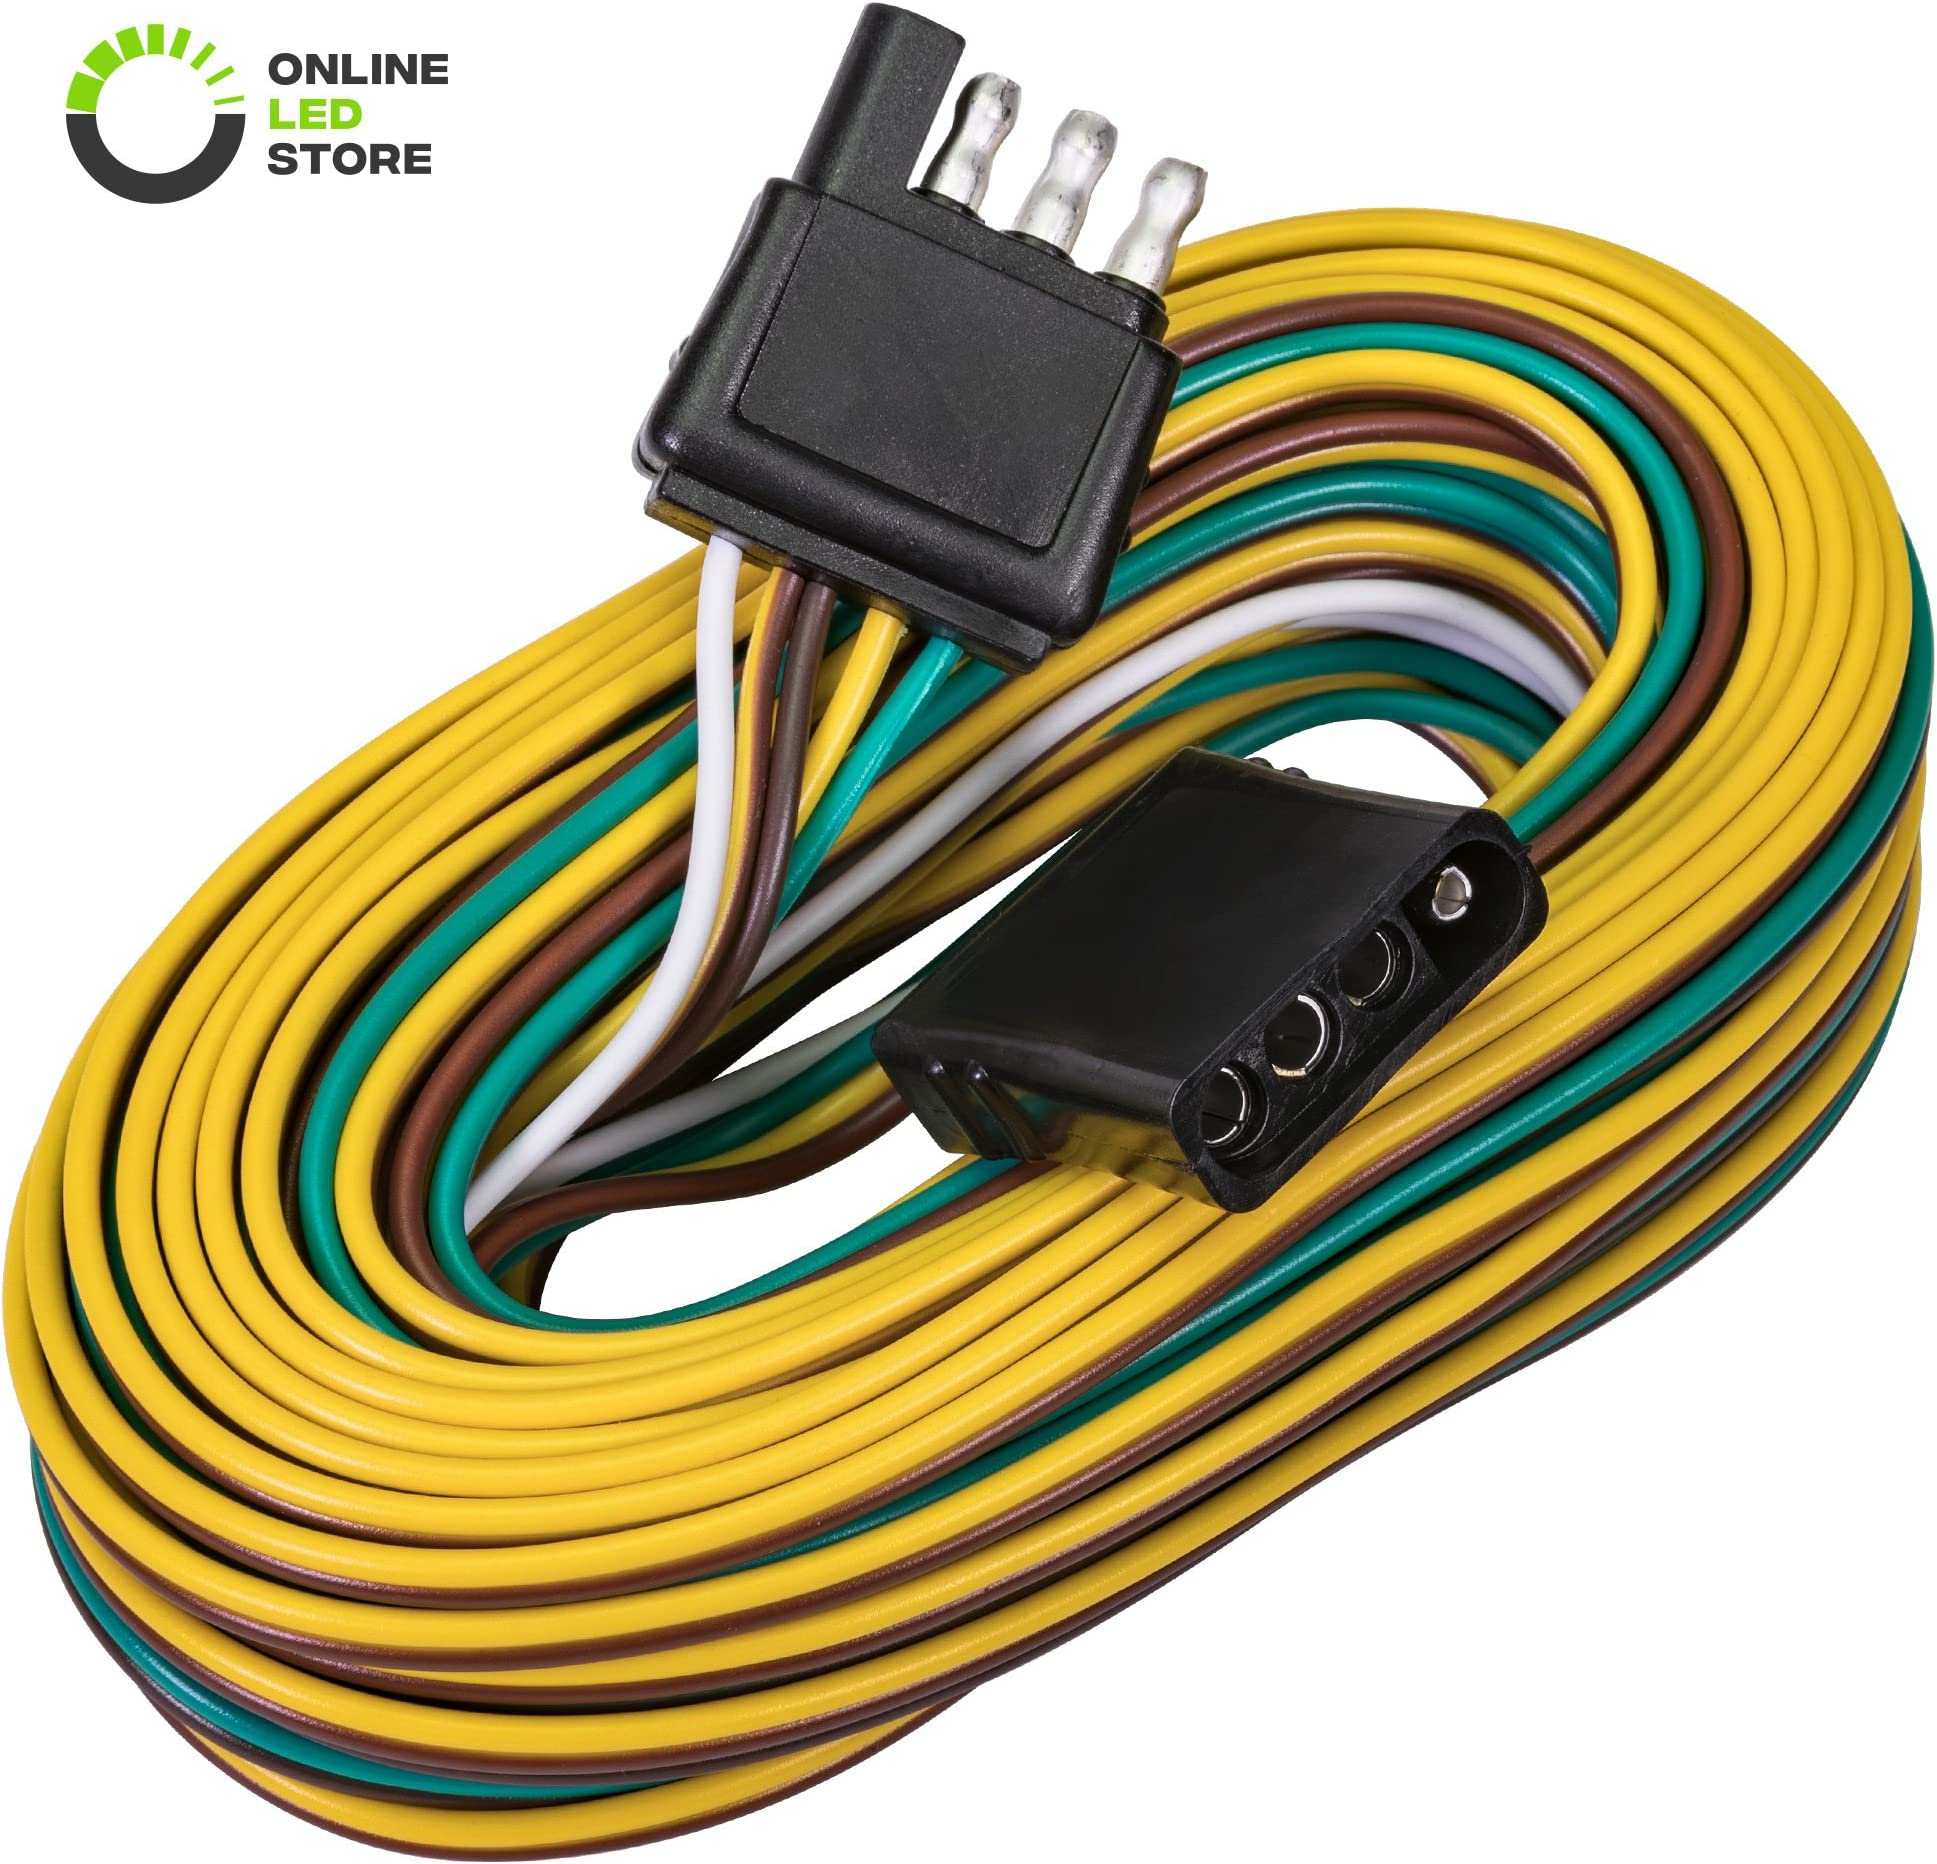 wiring adapter seven pin to seves flat best wiring library  amazon com wiring hitch accessories automotivewiring adapter seven pin to seves flat 10